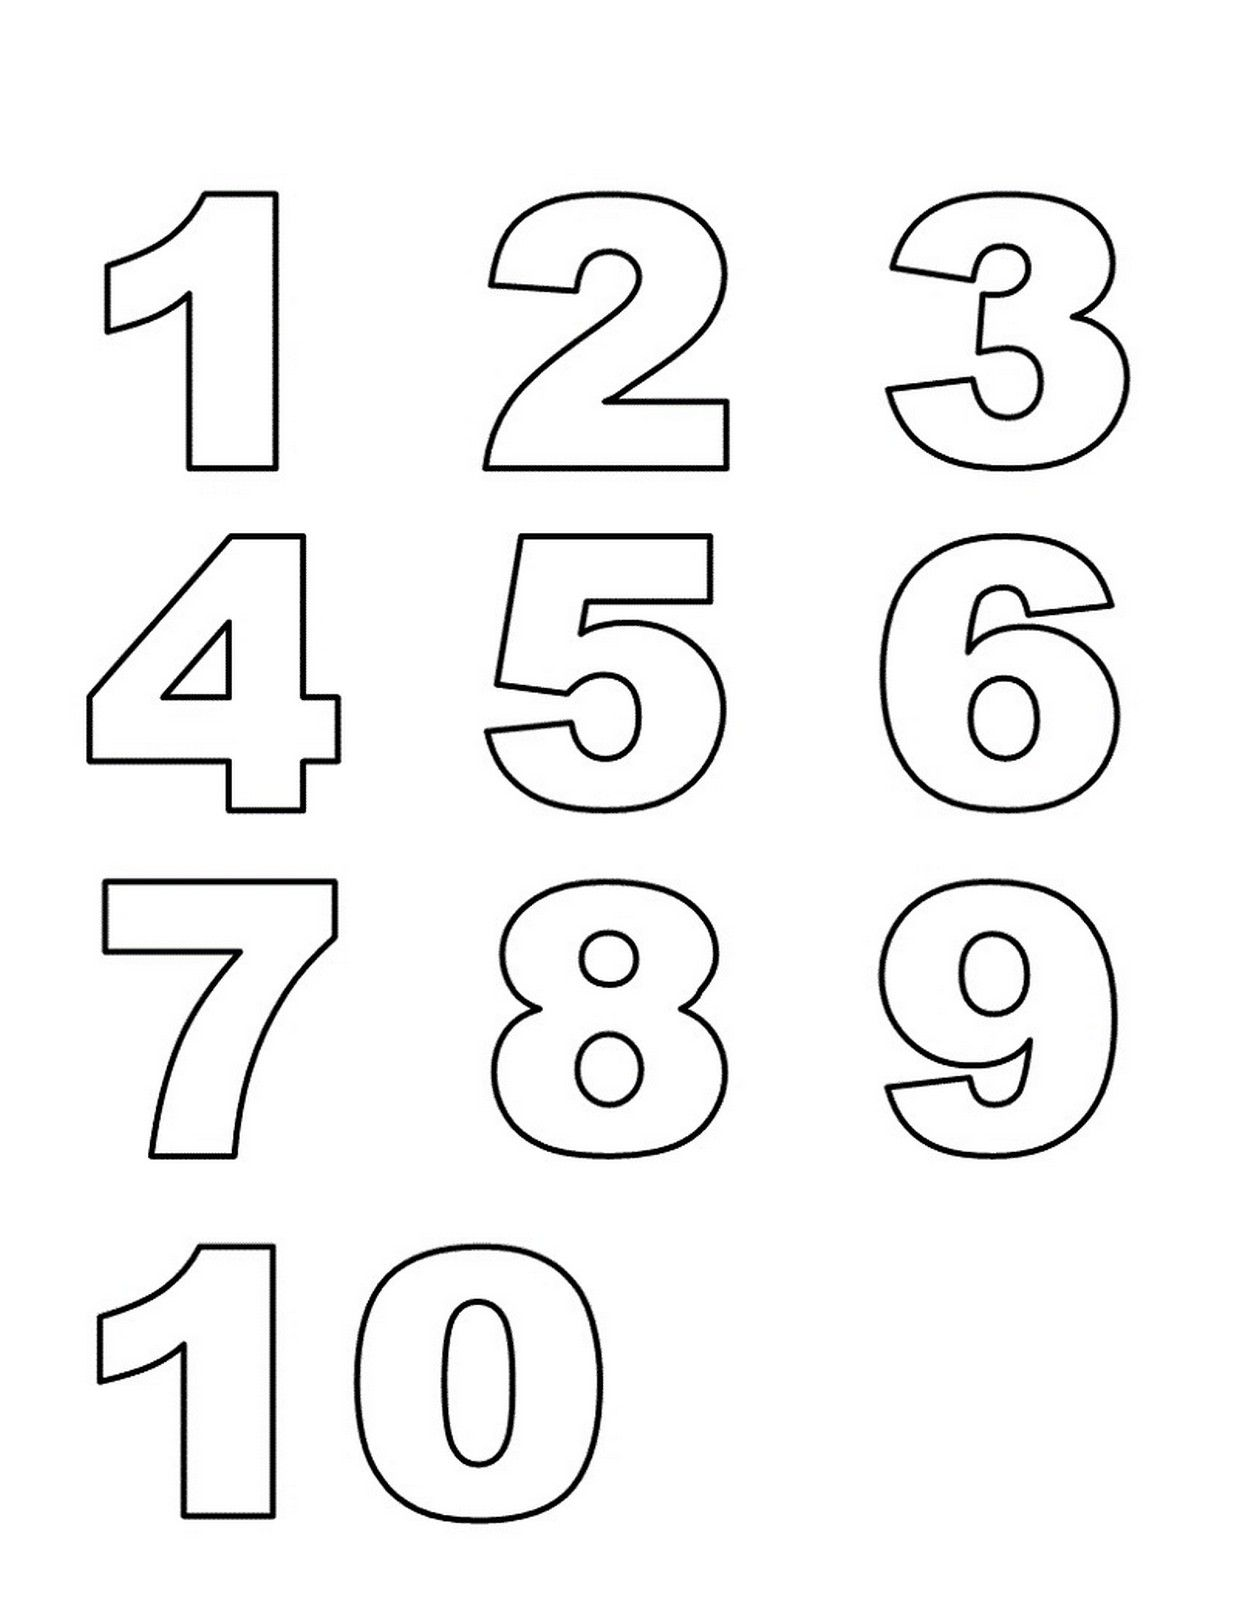 numbers 1-10 preschool printables list | Alphabets and Numbers ...